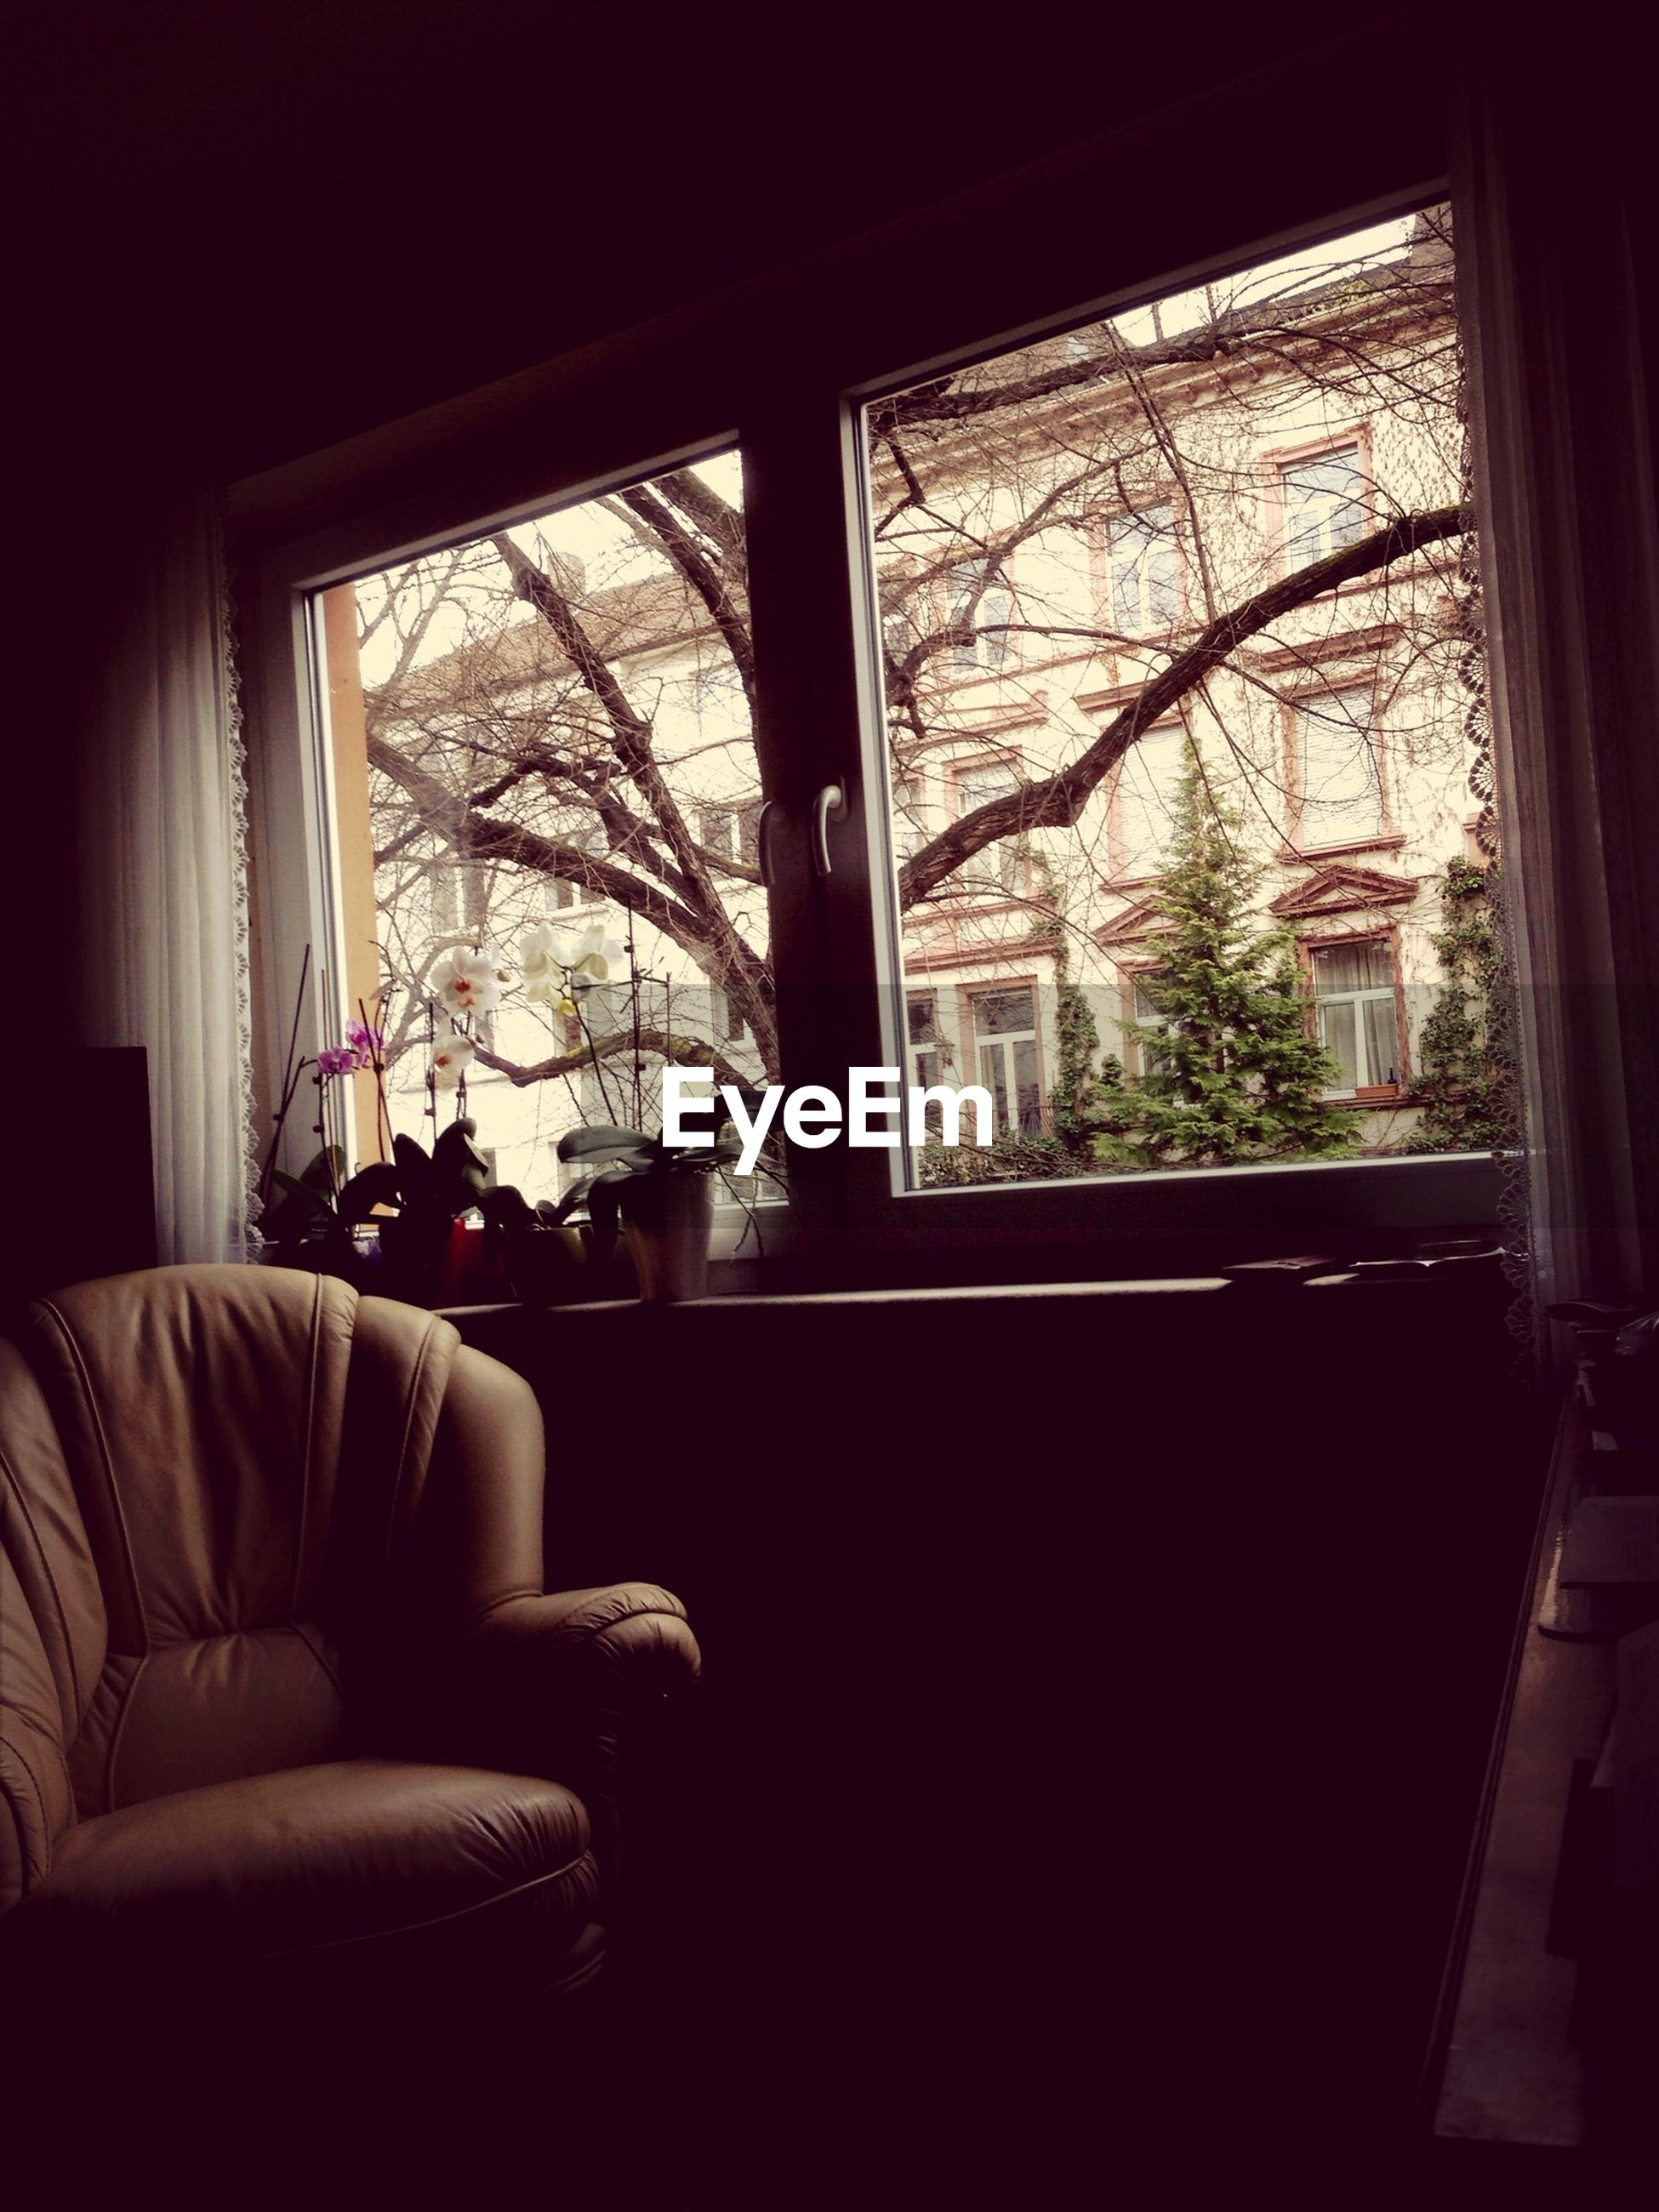 indoors, window, glass - material, transparent, home interior, curtain, looking through window, chair, window sill, house, table, tree, absence, domestic room, sofa, glass, bedroom, day, sitting, open